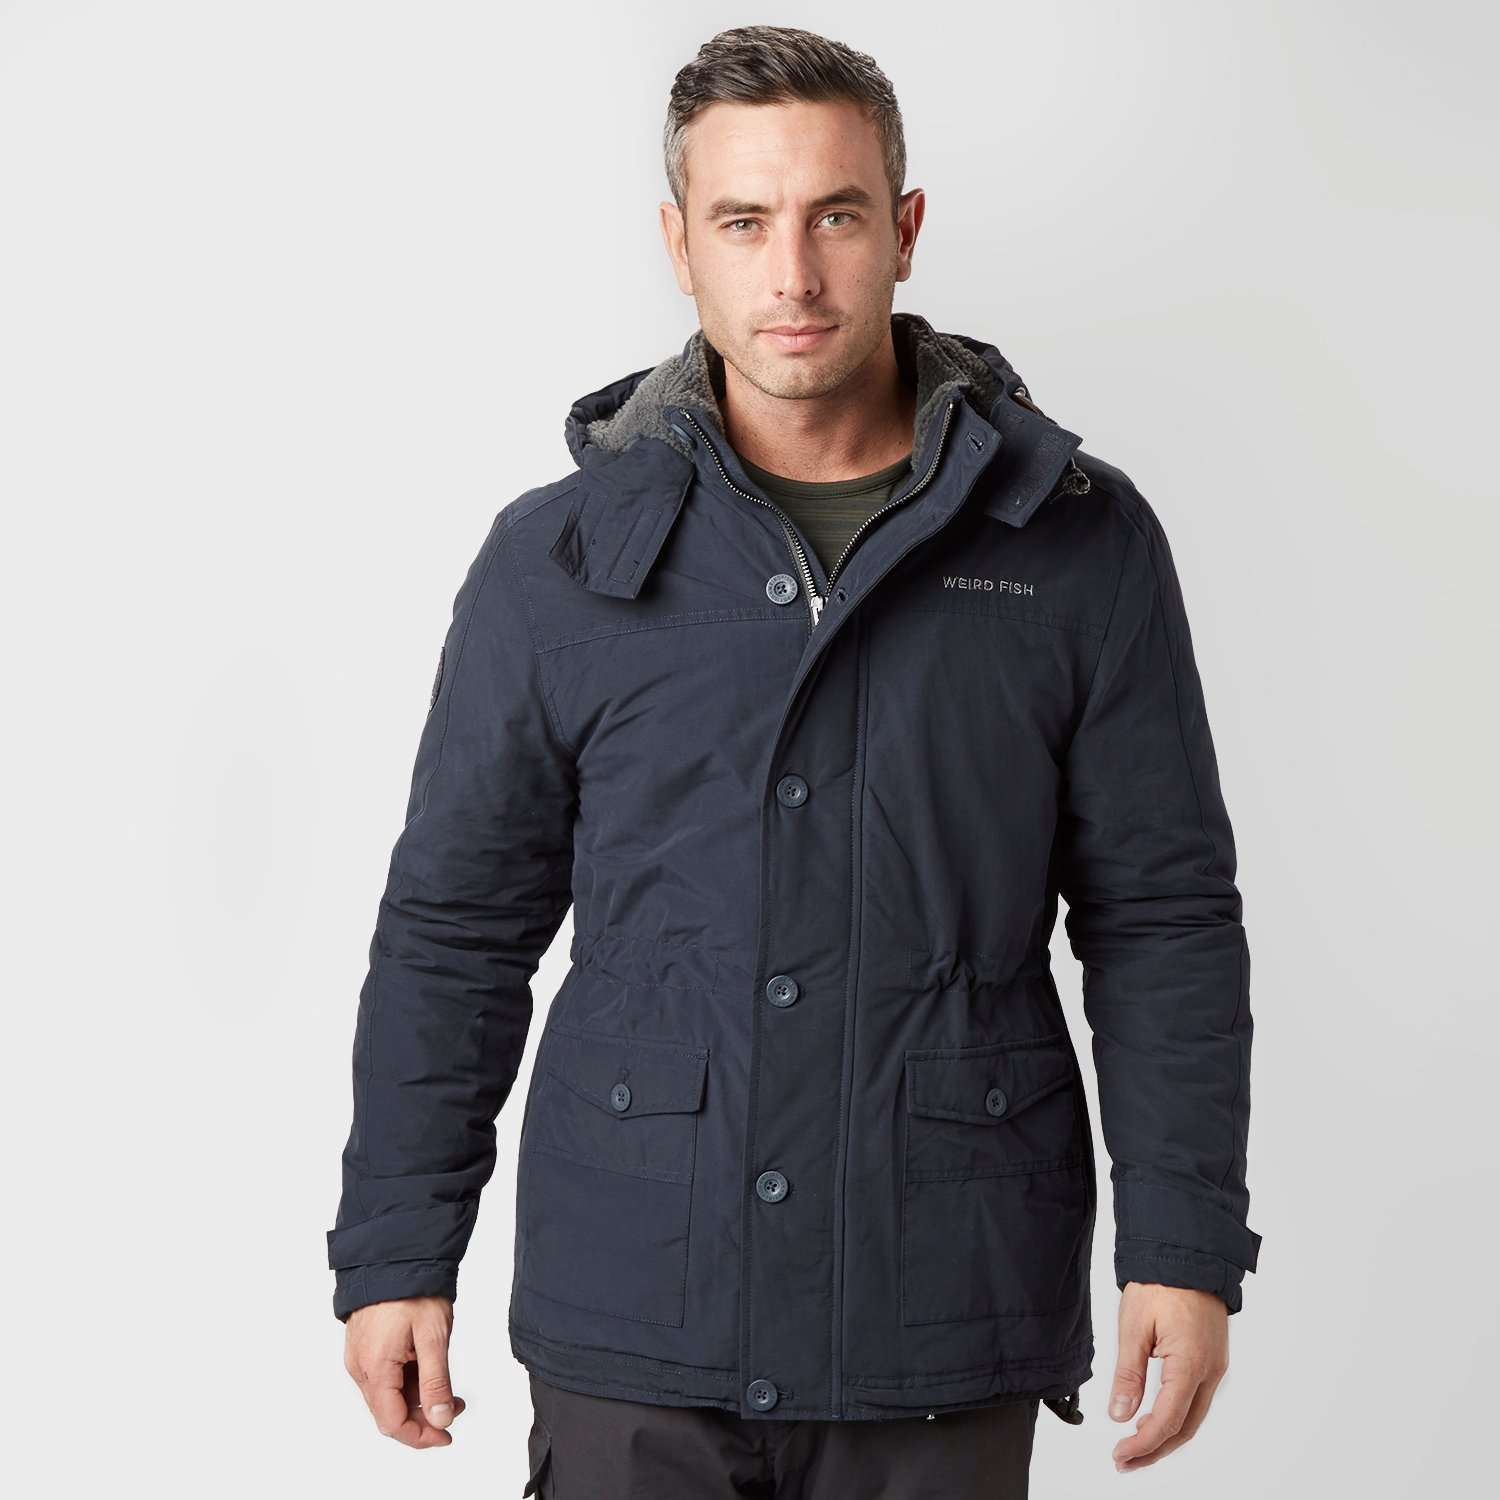 WEIRD FISH Men's Koski Parka